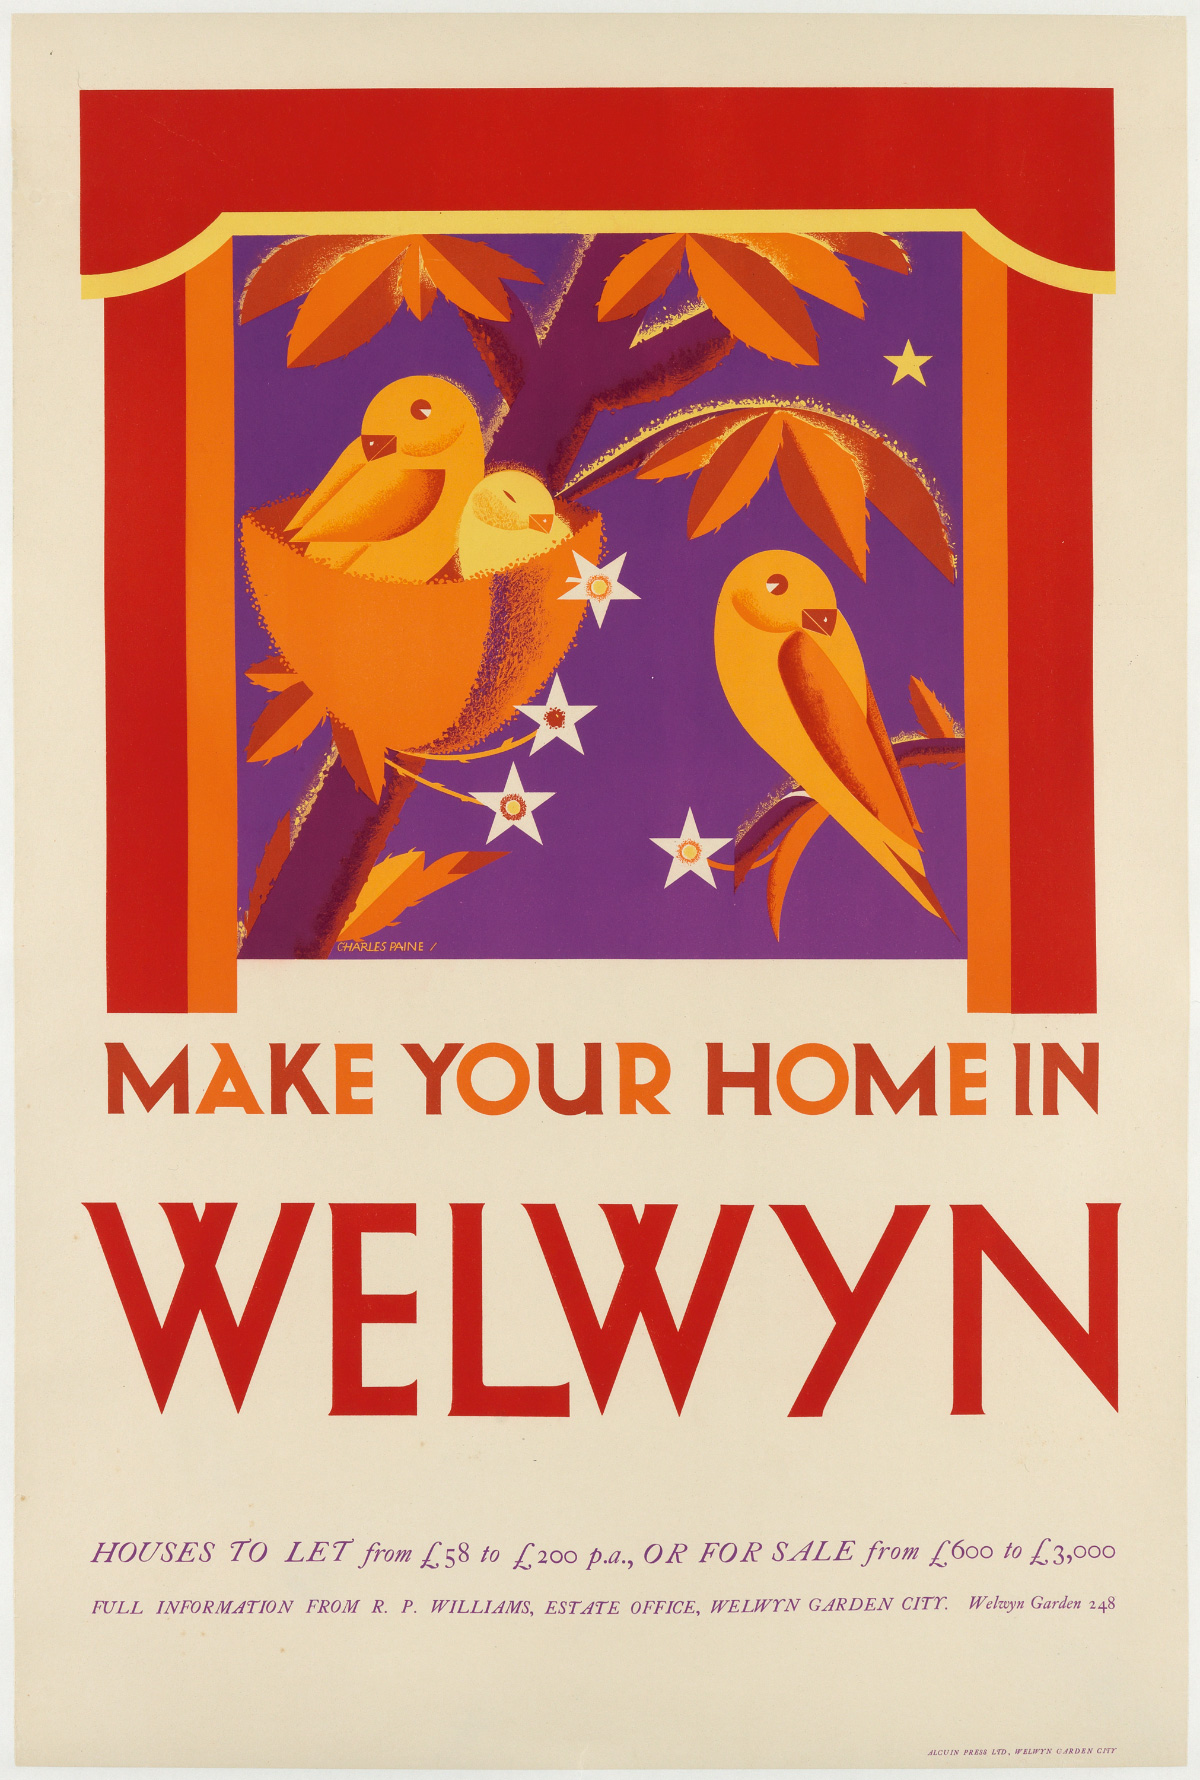 CHARLES PAINE (1895-1967). MAKE YOUR HOME IN WELWYN. Circa 1939. 29x19 inches, 75x50 cm. Alcuin Press Ltd., Welwyn Garden City.